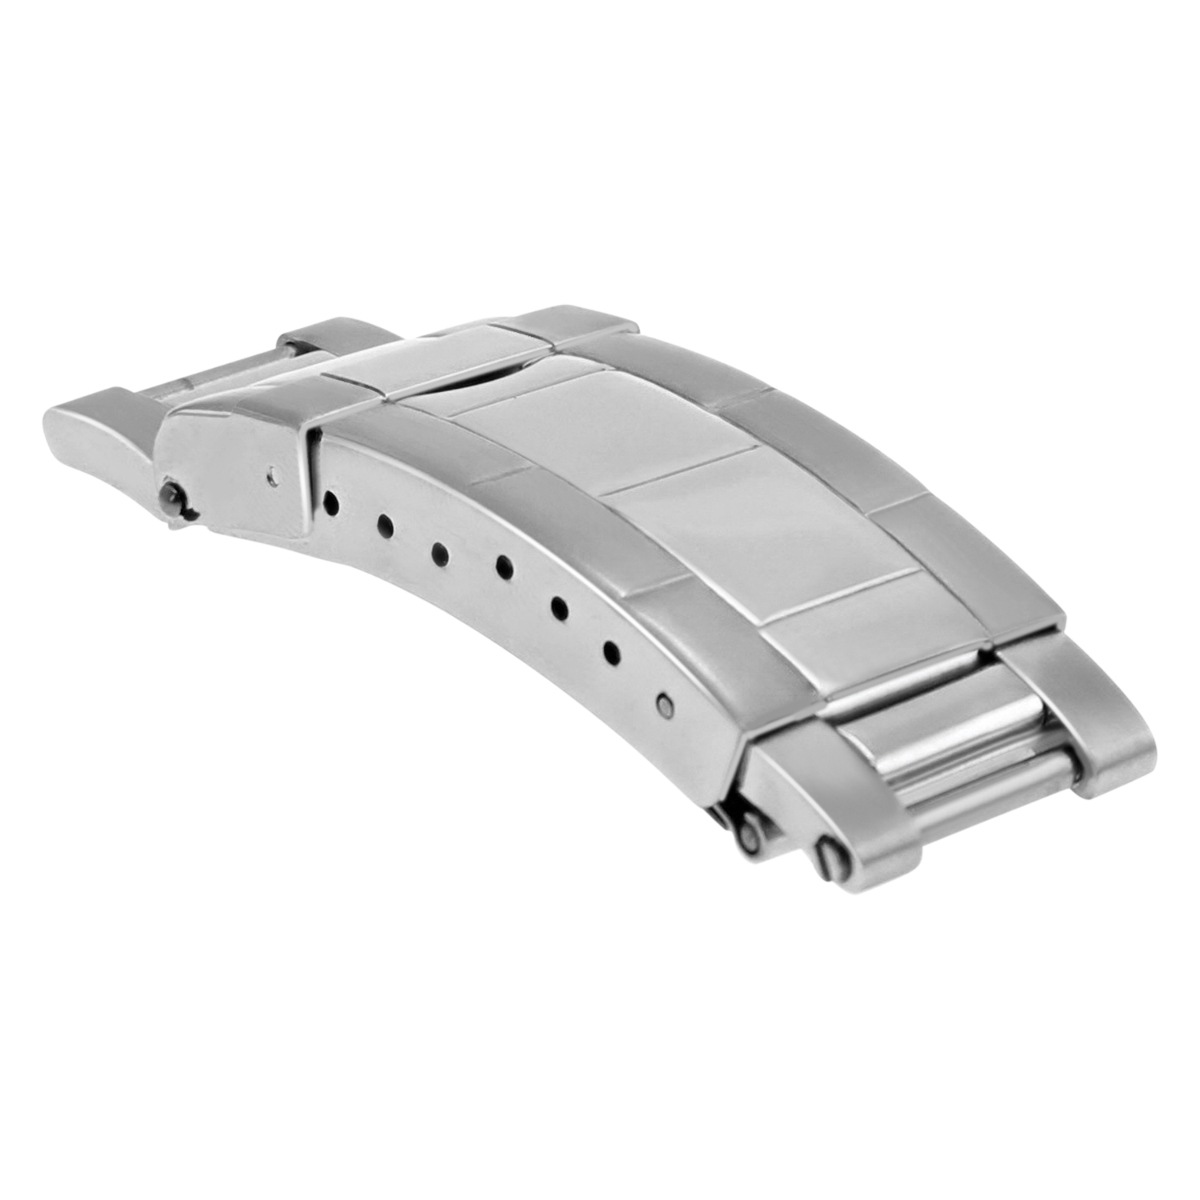 FLIP LOCK CLASP BUCKLE FOR ROLEX SUBMARINER OYSTER WATCH BAND SHINY /CENTER